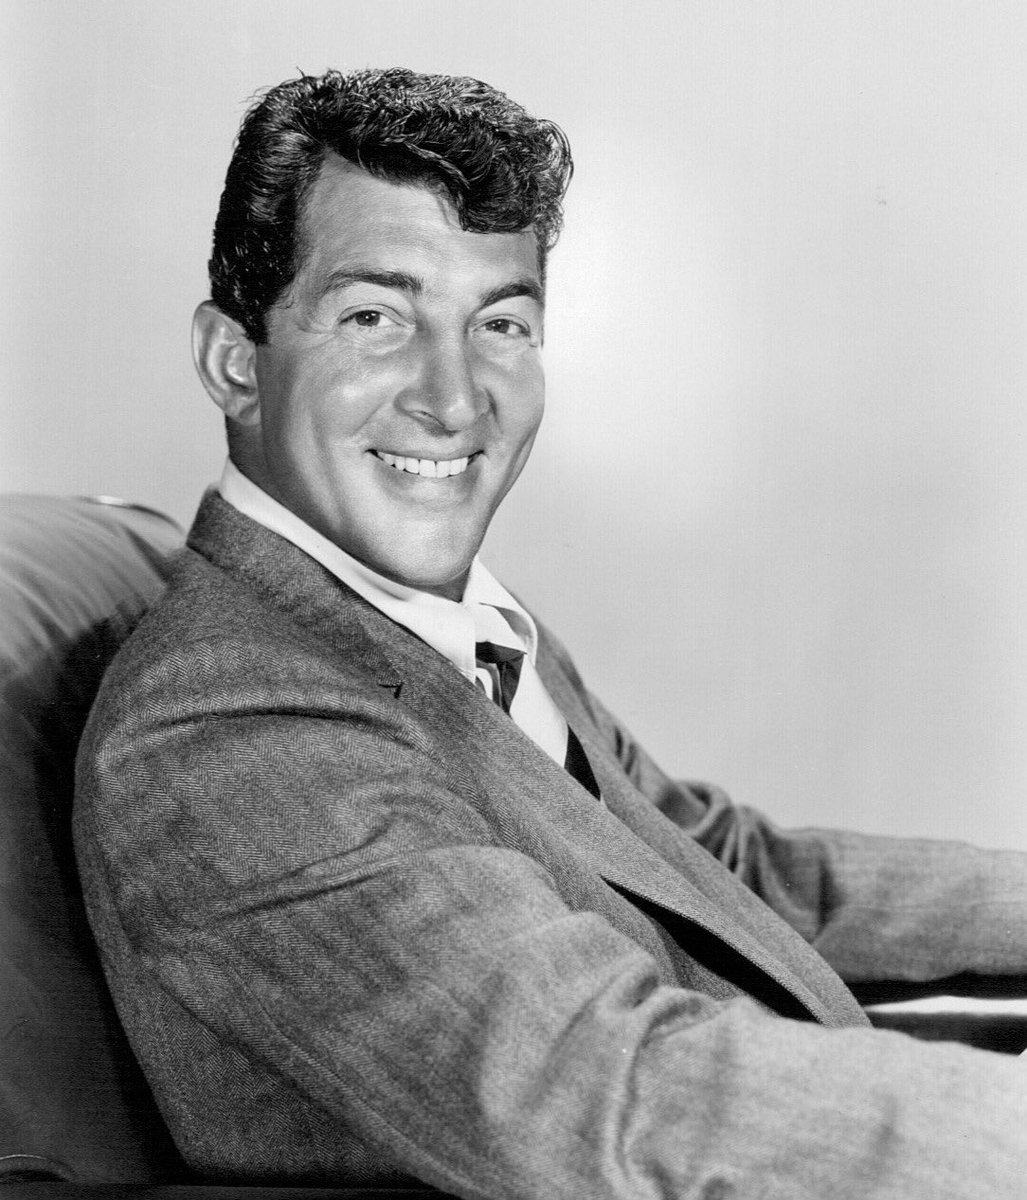 Happy birthday to #DeanMartin who was born in #SteubenvilleOhio in 1917. He became famous as half of #MartinandLewis and later as part of the #RatPack. #TheKingofCoolpic.twitter.com/8S4VMQyFFV